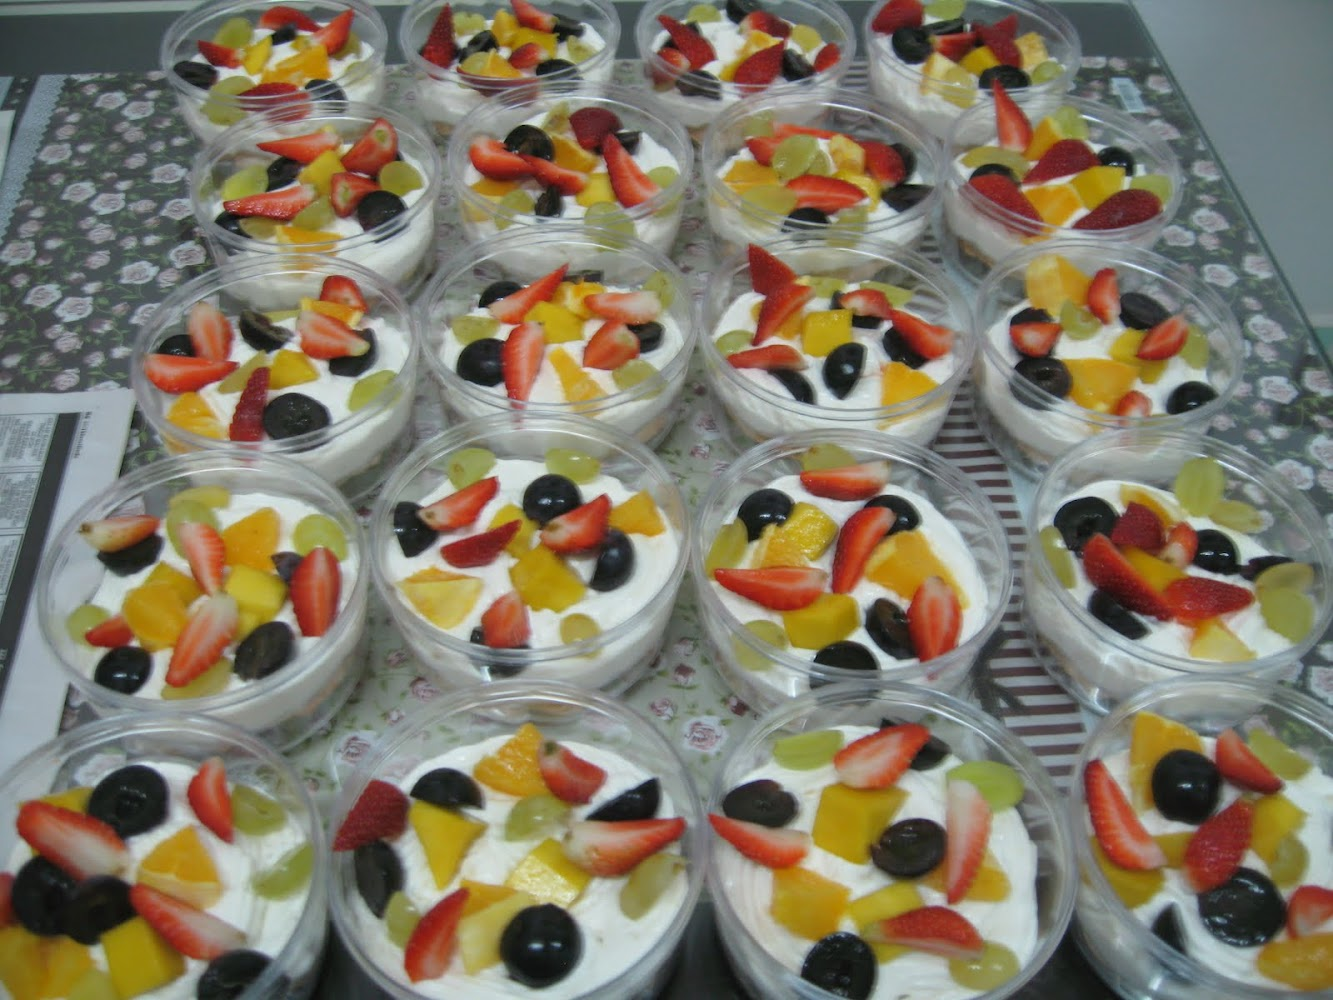 Pavlova,Apam Dot2, CMC,Cream Puff, Red Velvet